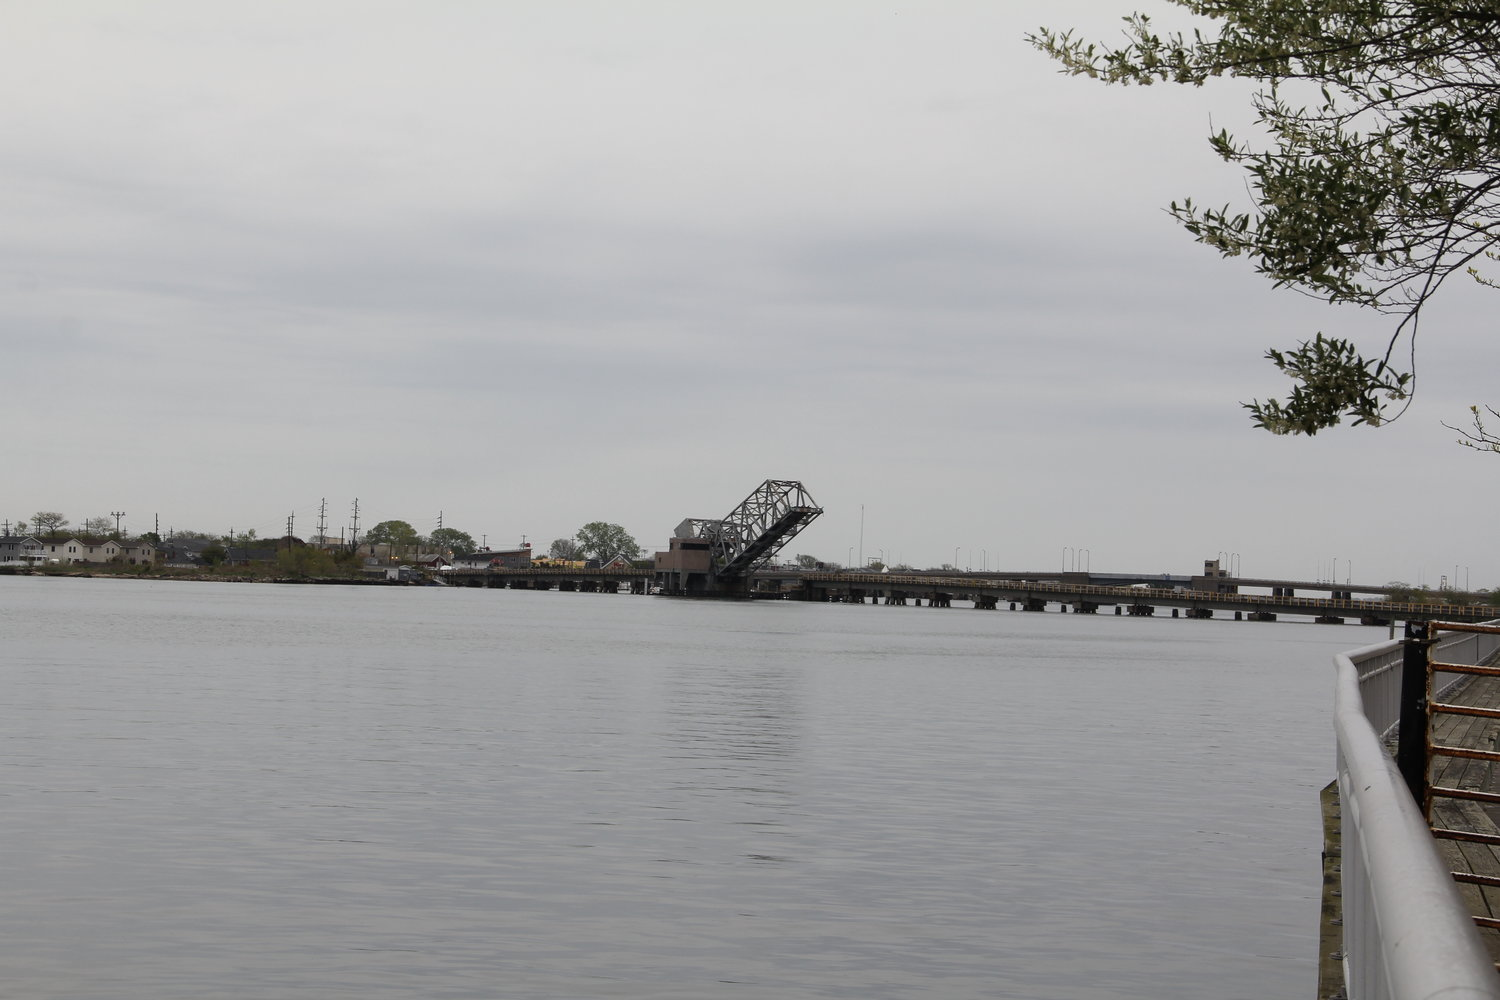 The City Council voted to purchase 0.2 acres of underwater shoreline from the town for $55,250 in order to move forward with a $20 million bulkhead project along the bay.